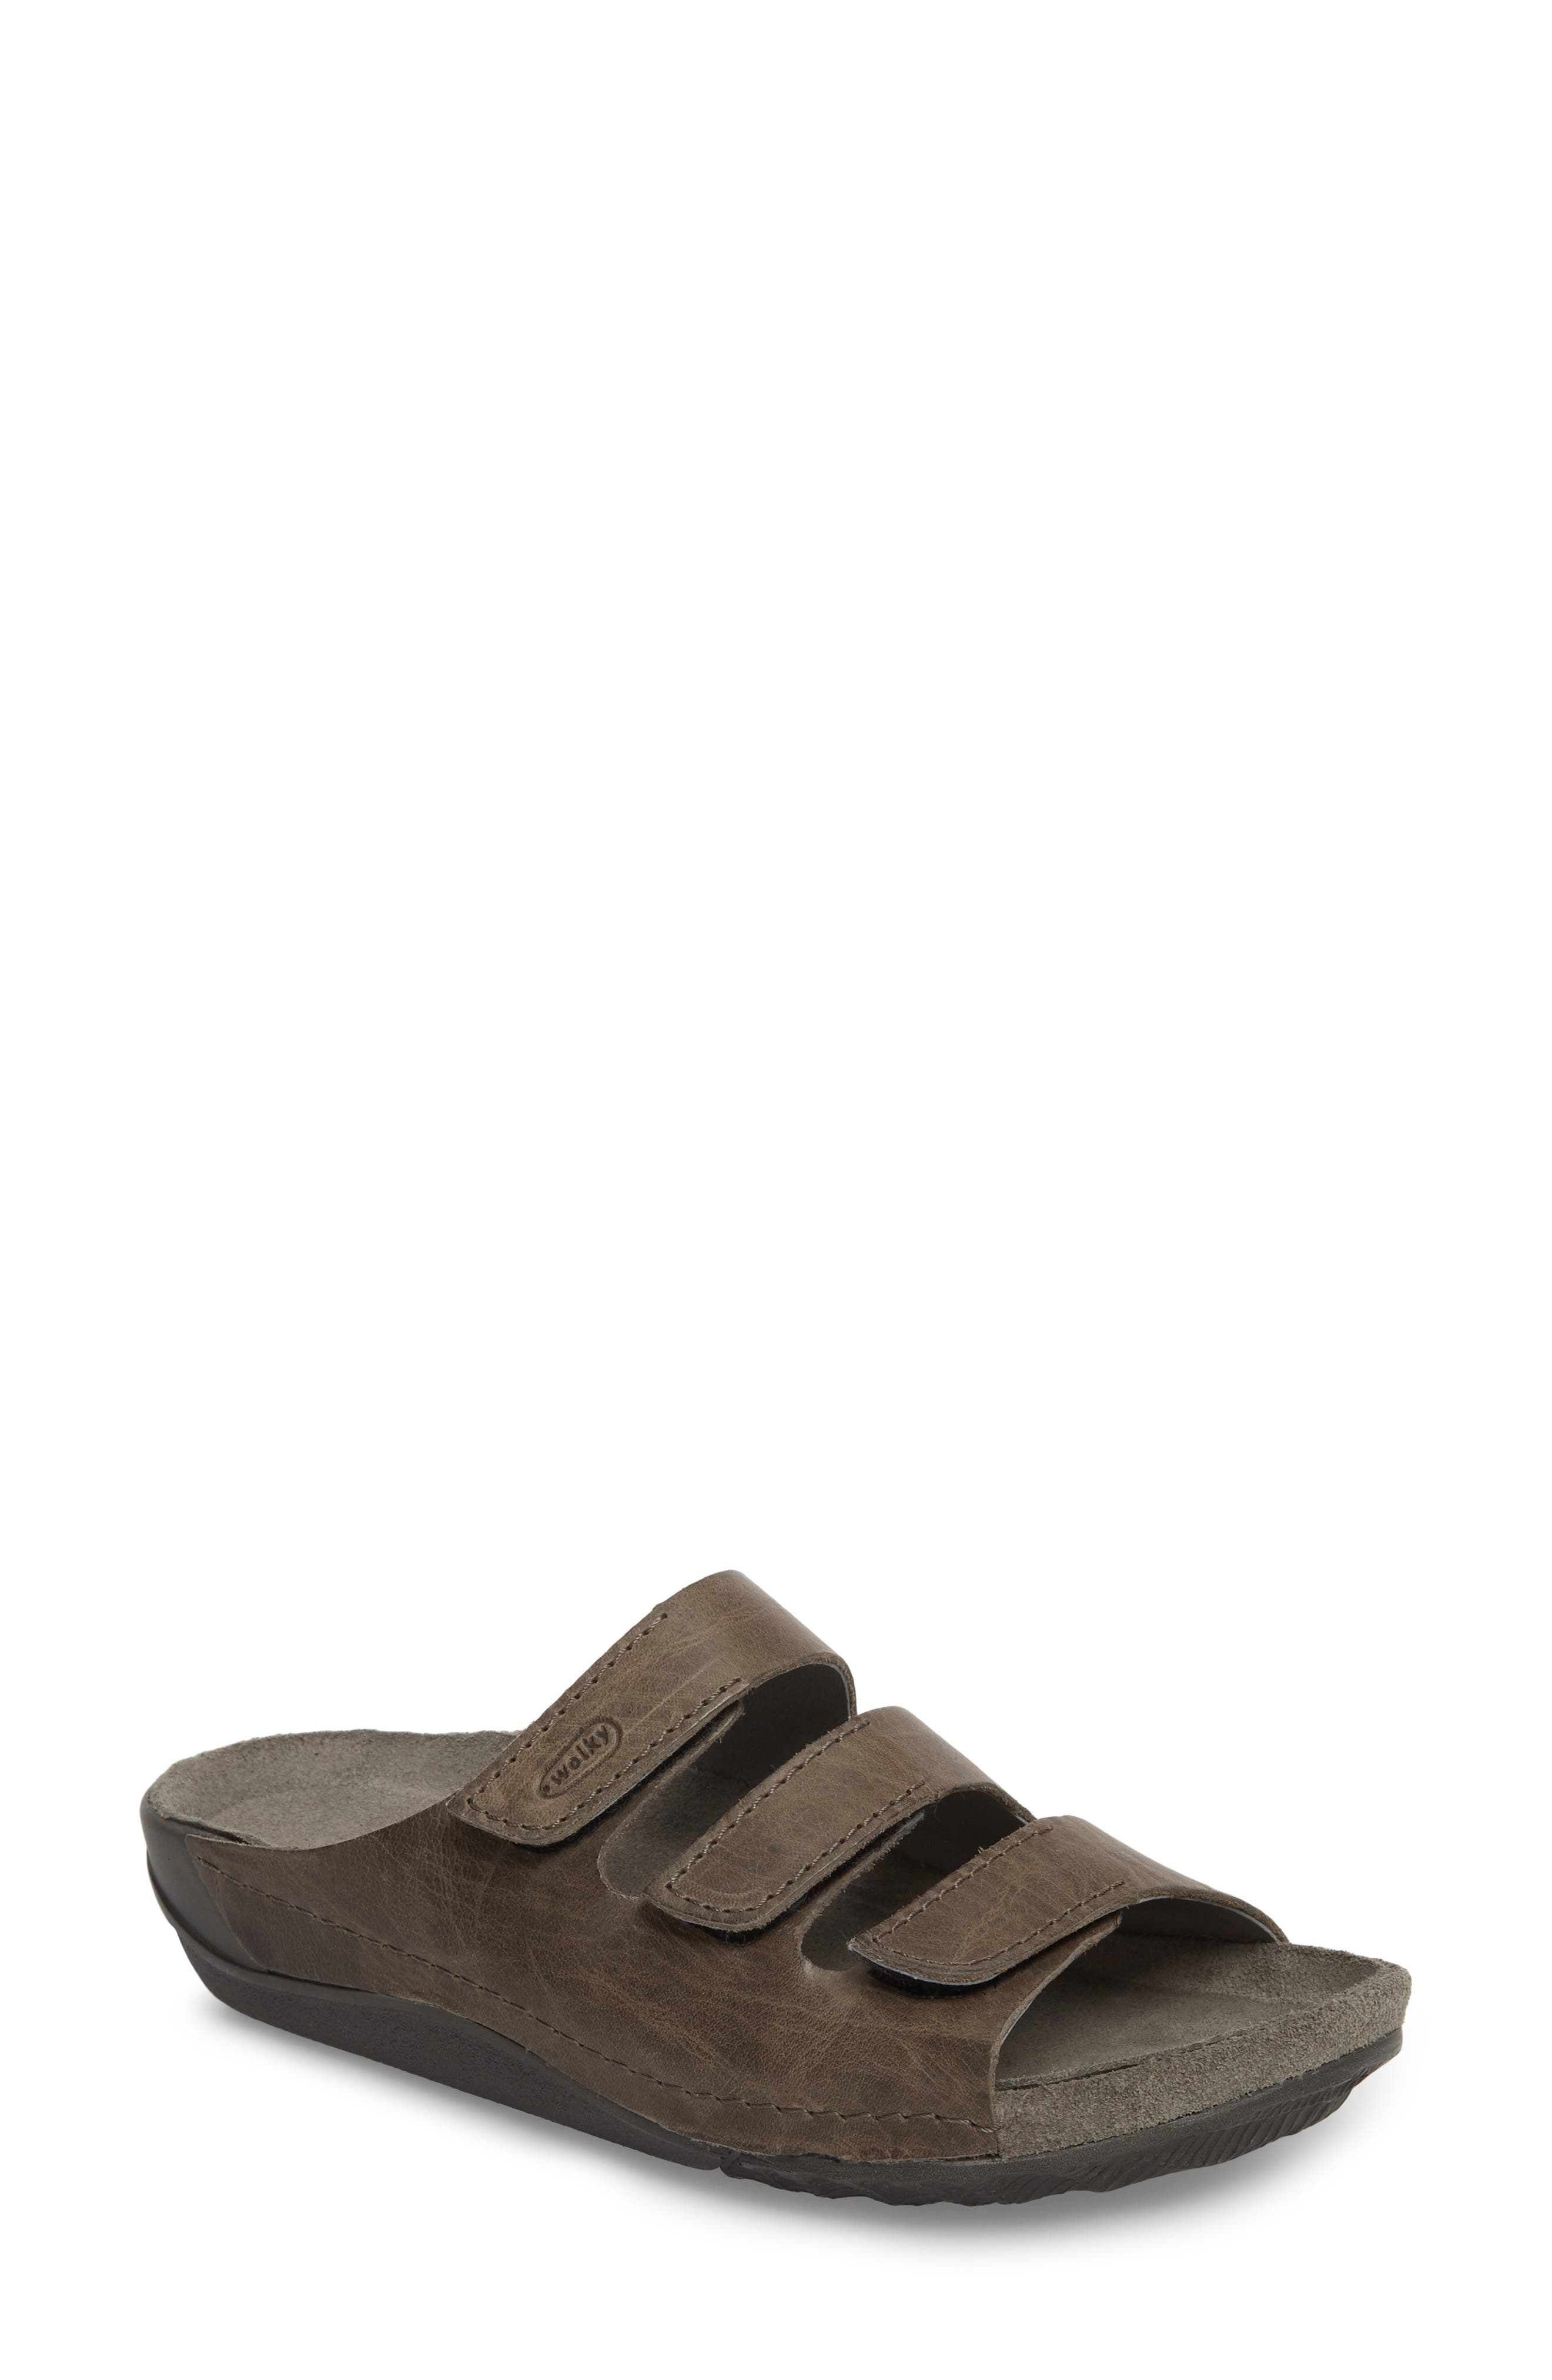 Nomad Slide Sandal,                         Main,                         color, SLATE LEATHER